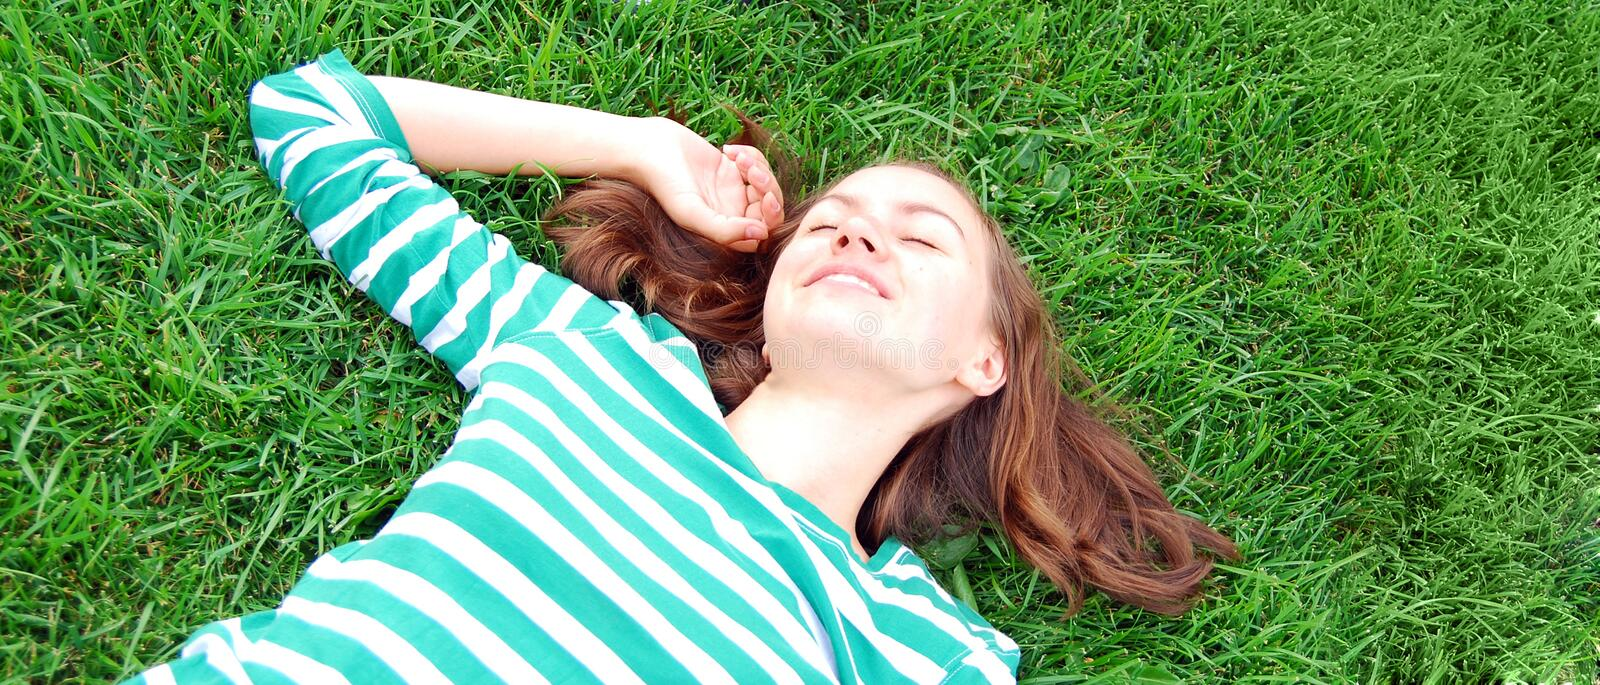 On the grass stock photography